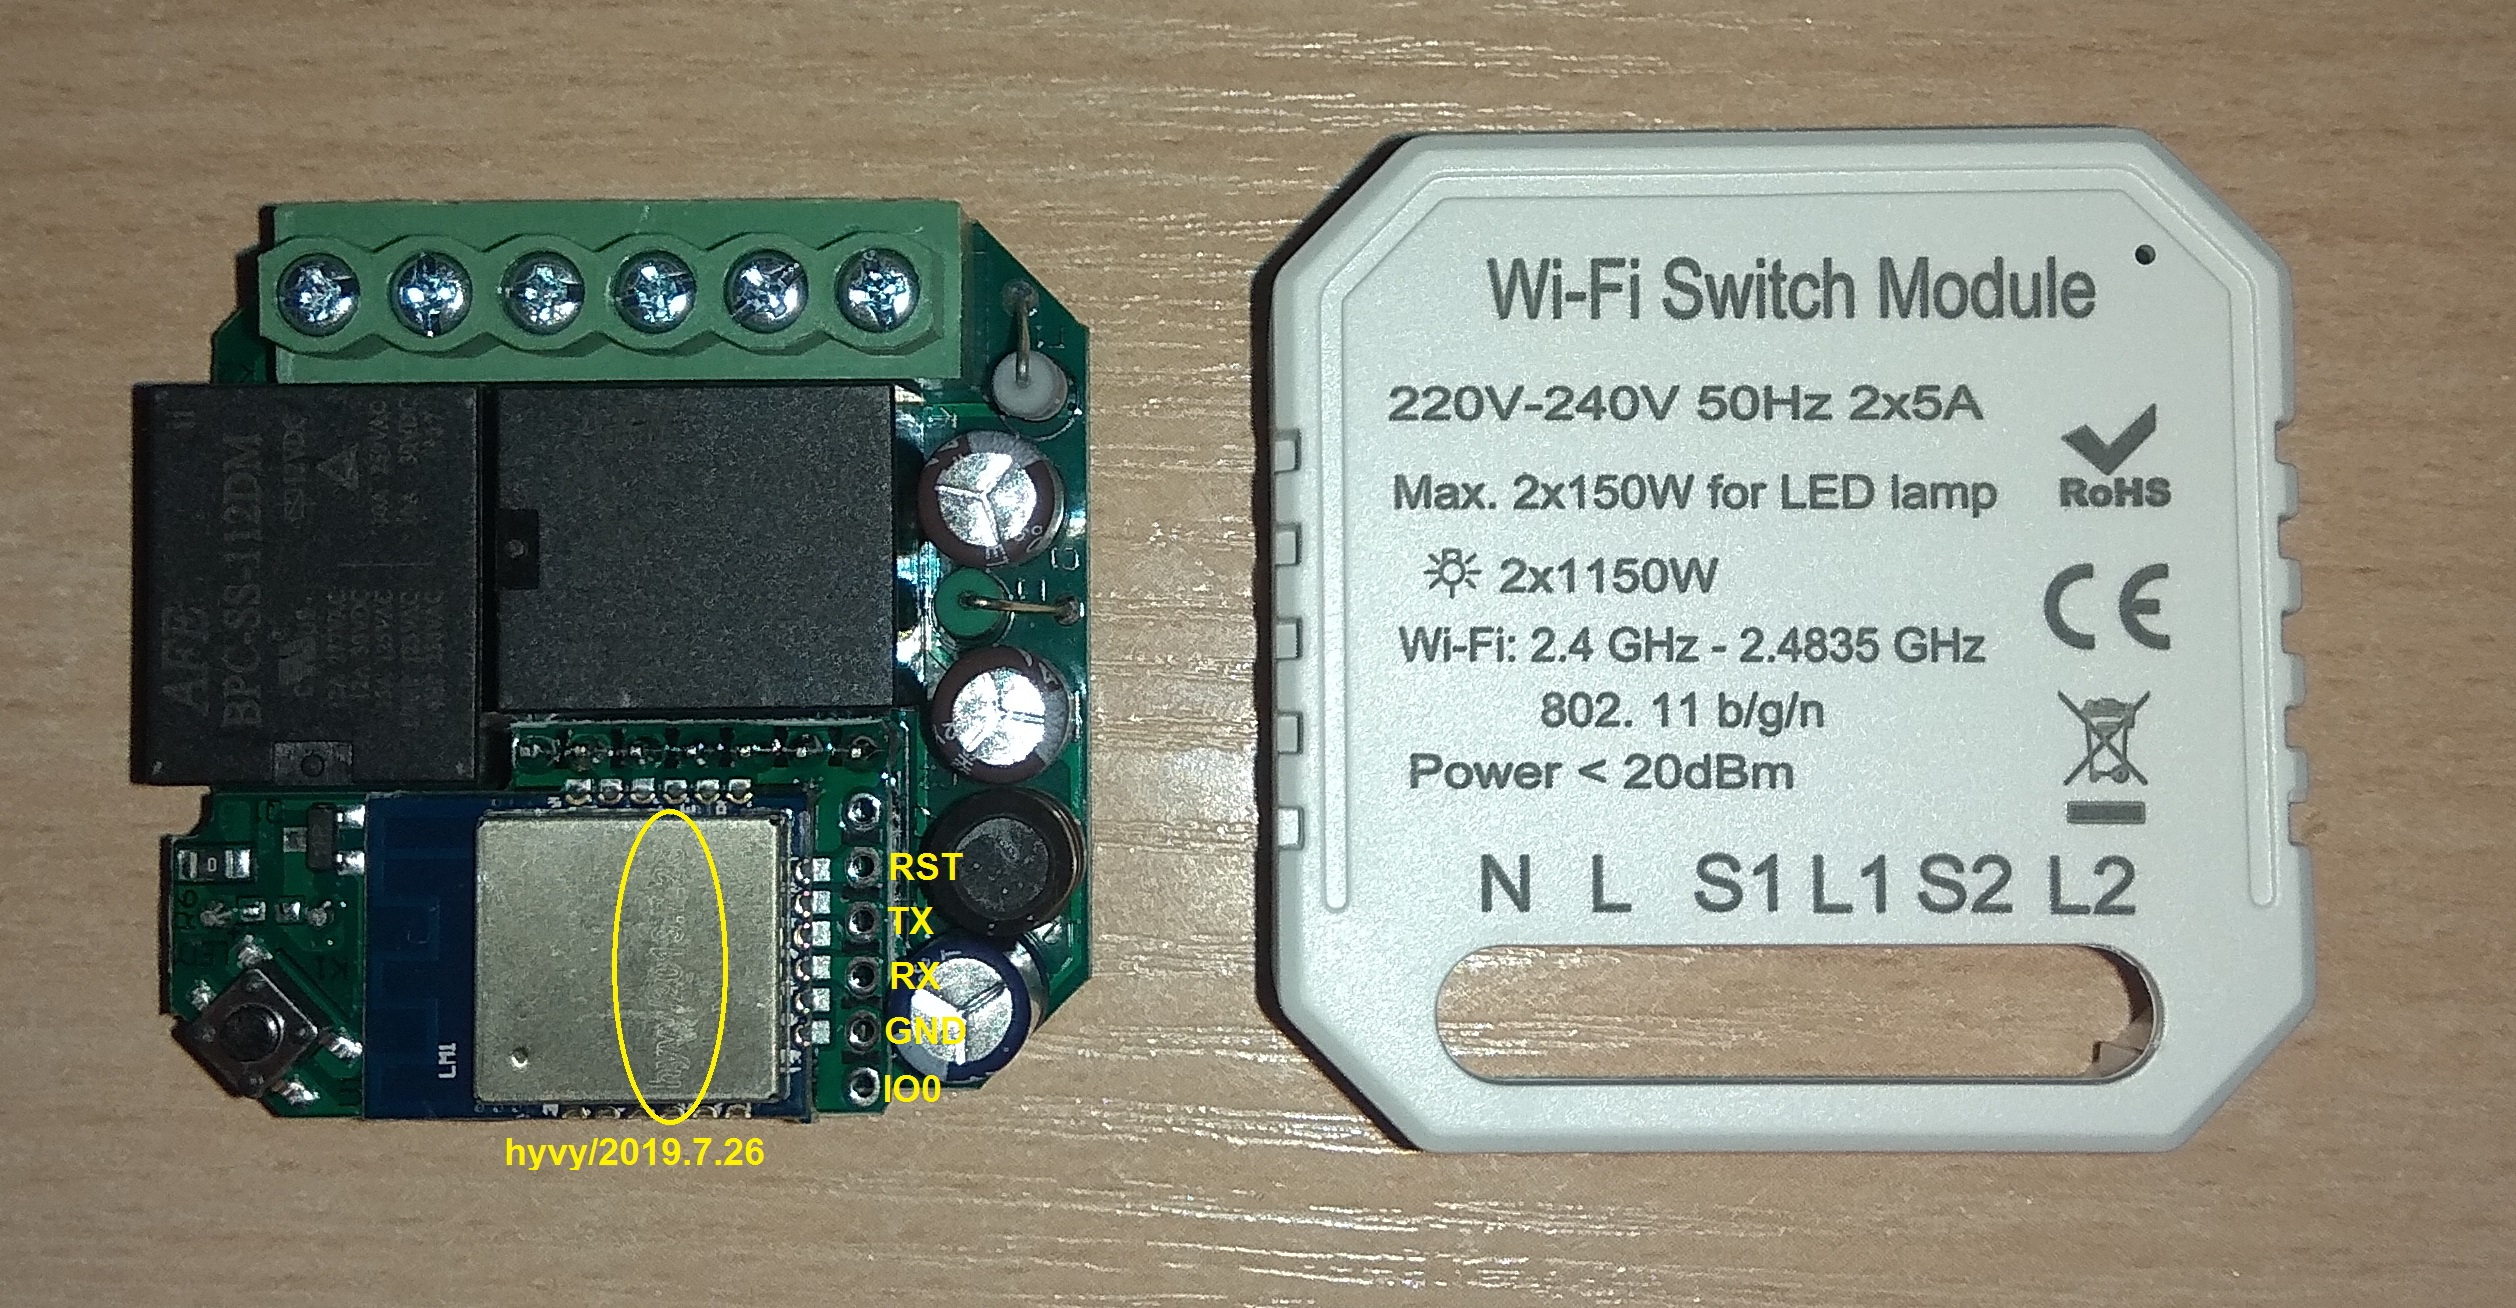 Wi-Fi Switch Module.jpg